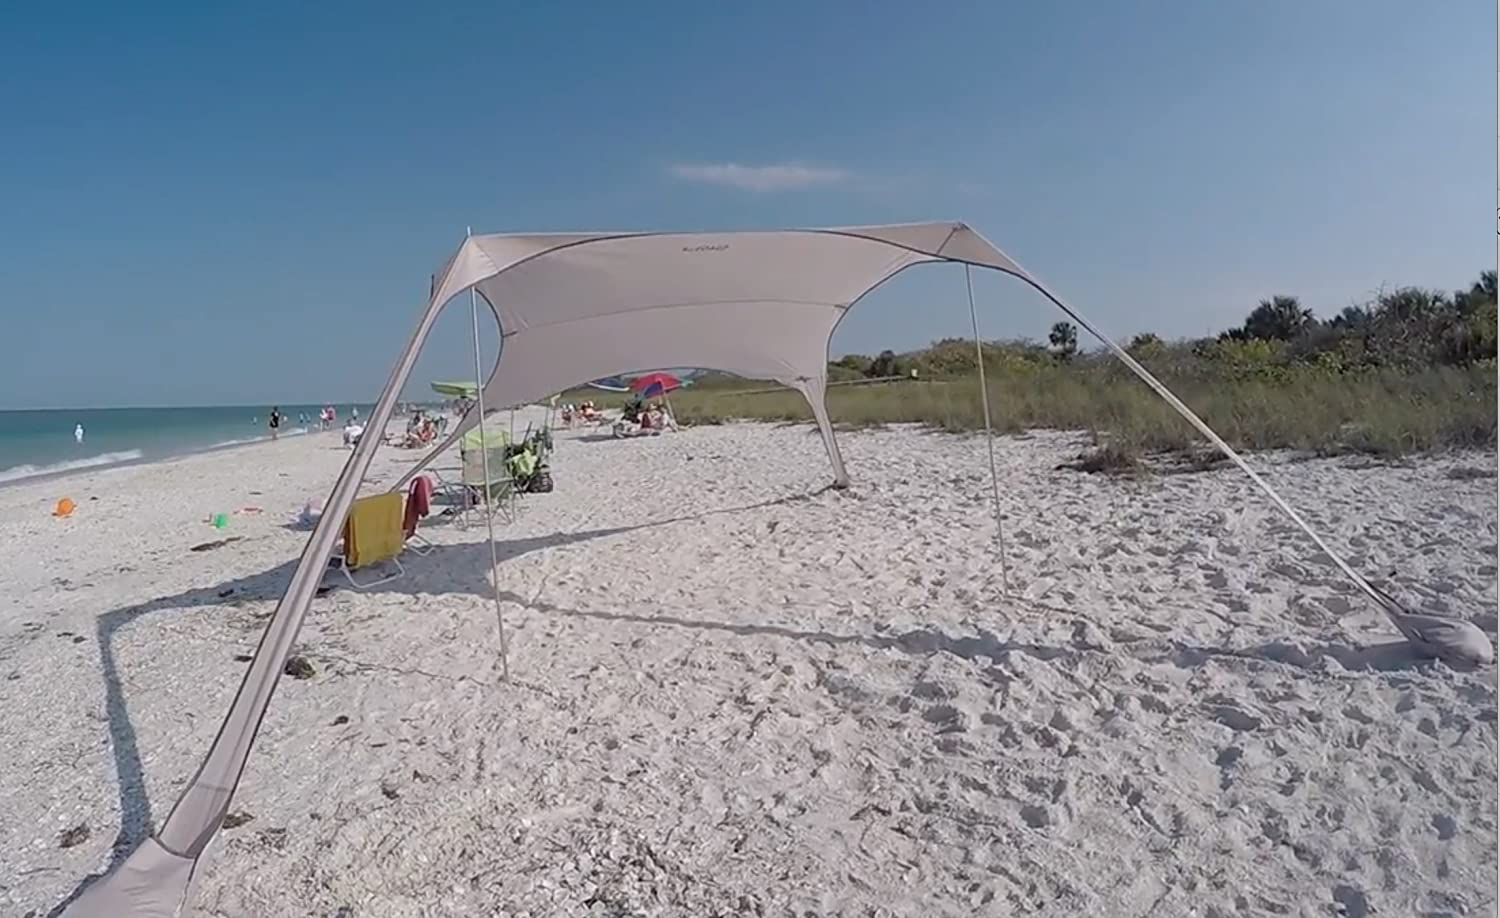 Amazon.com FUNS Portable Stakeless Windproof Beach Sunshade and Gazebo Tent - 10u0027 X 10u0027 - with Sand Anchors. Perfect Canopy Sun Shade Shelter Tarp for ... : beach gazebo tent - memphite.com